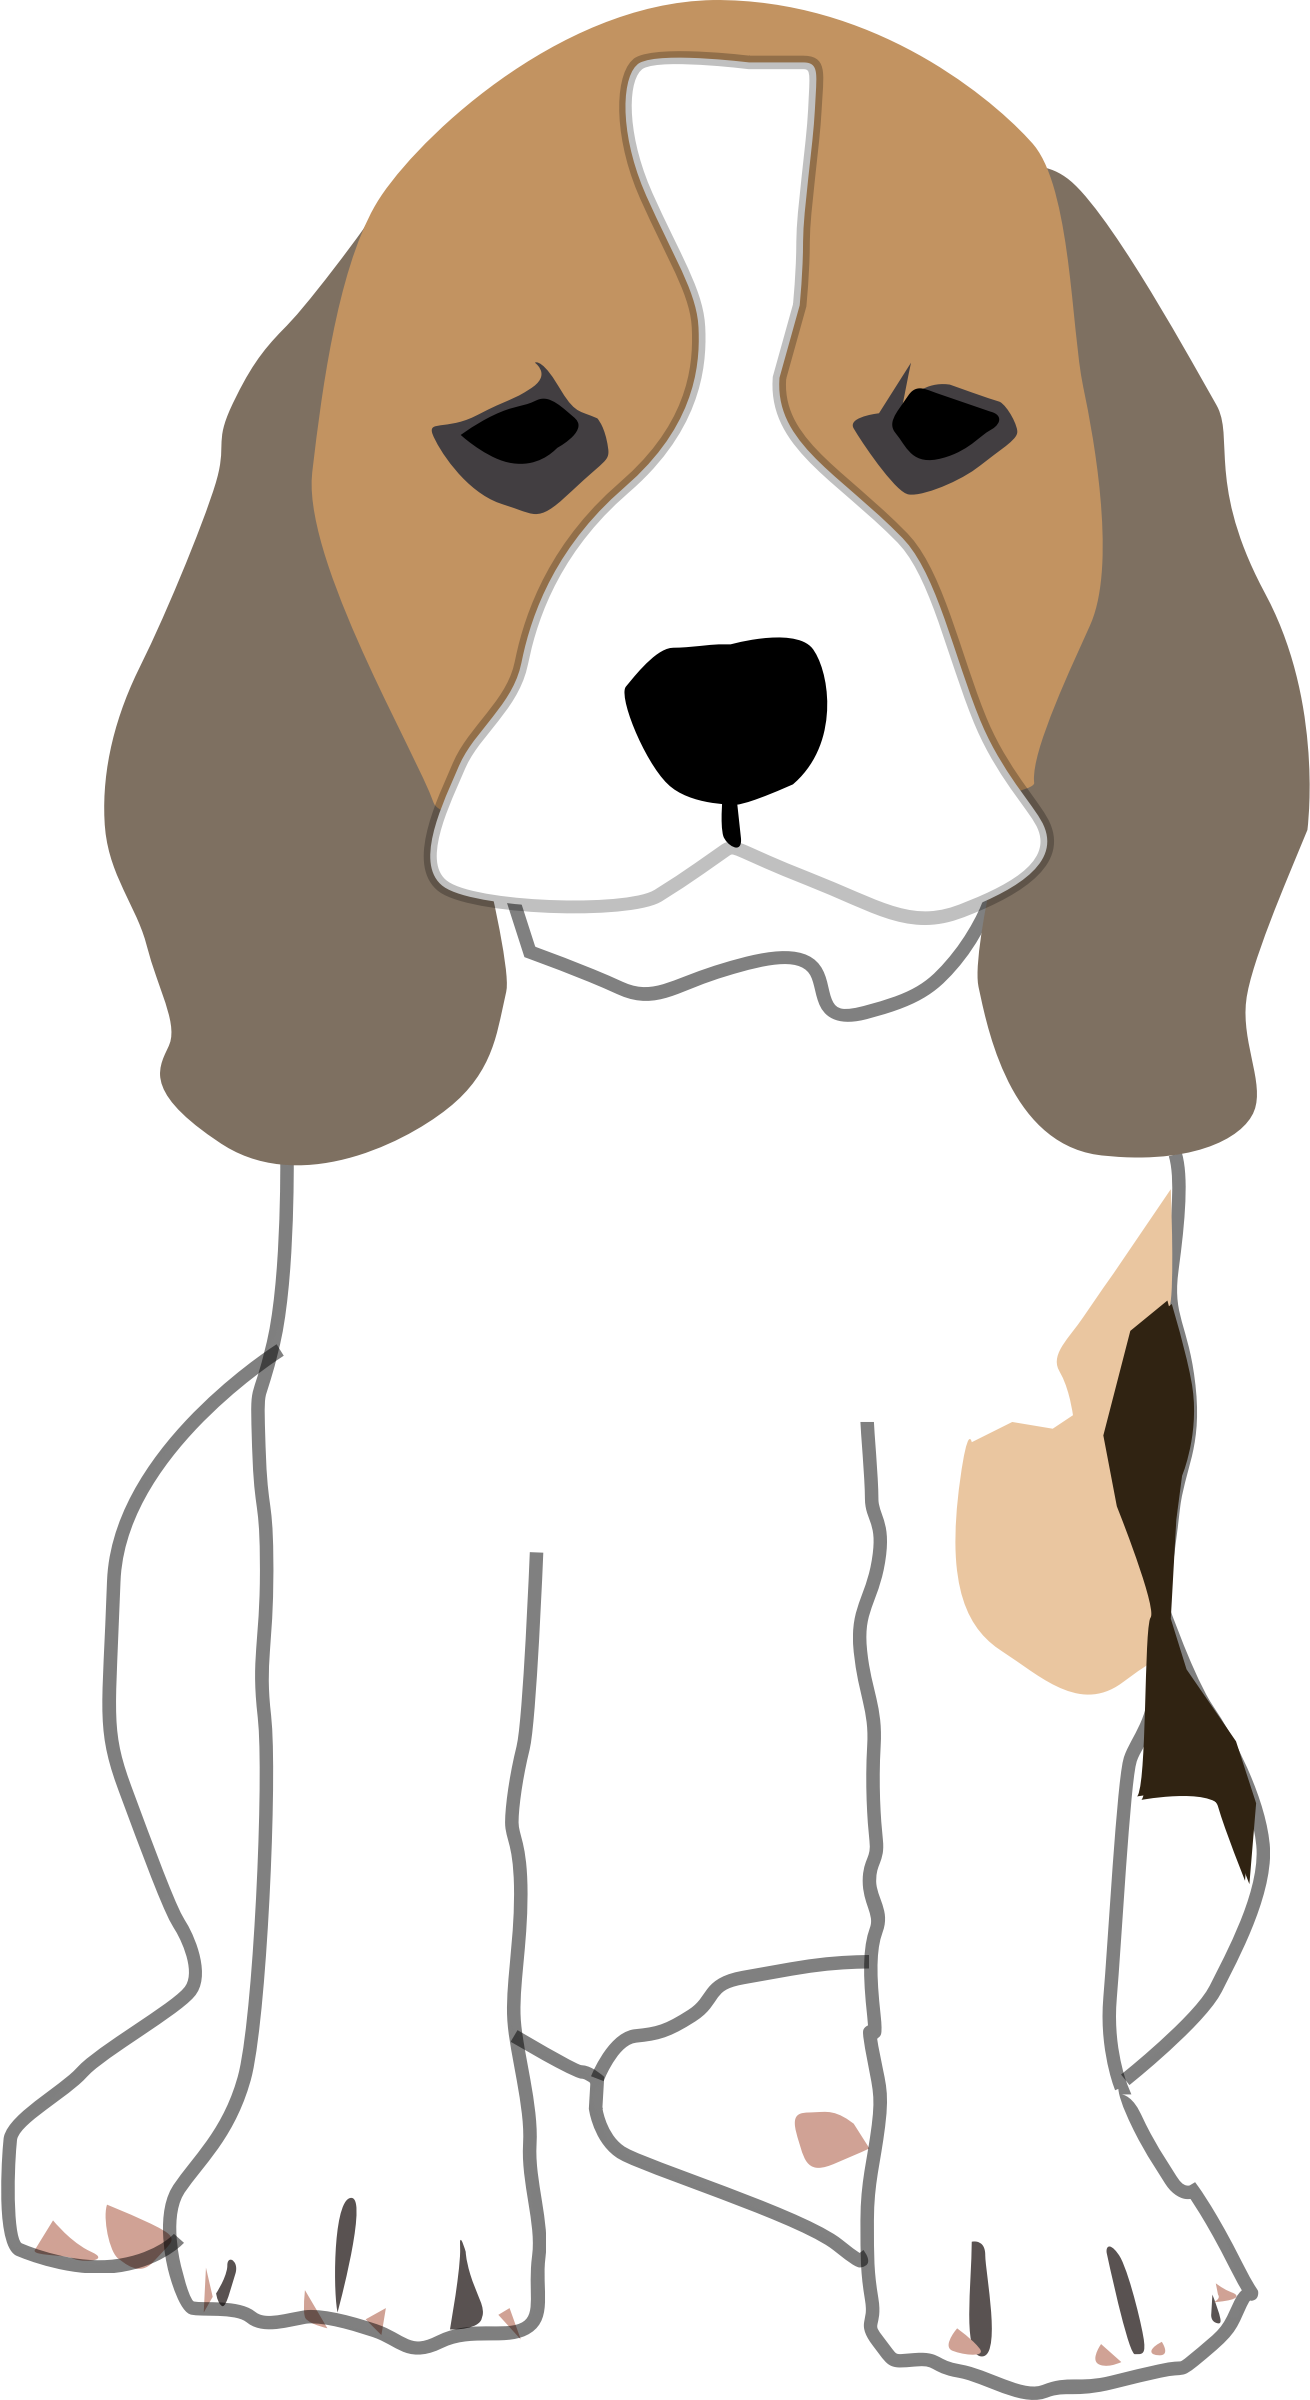 Hunting clipart beagle. Puppy by mikestratton net